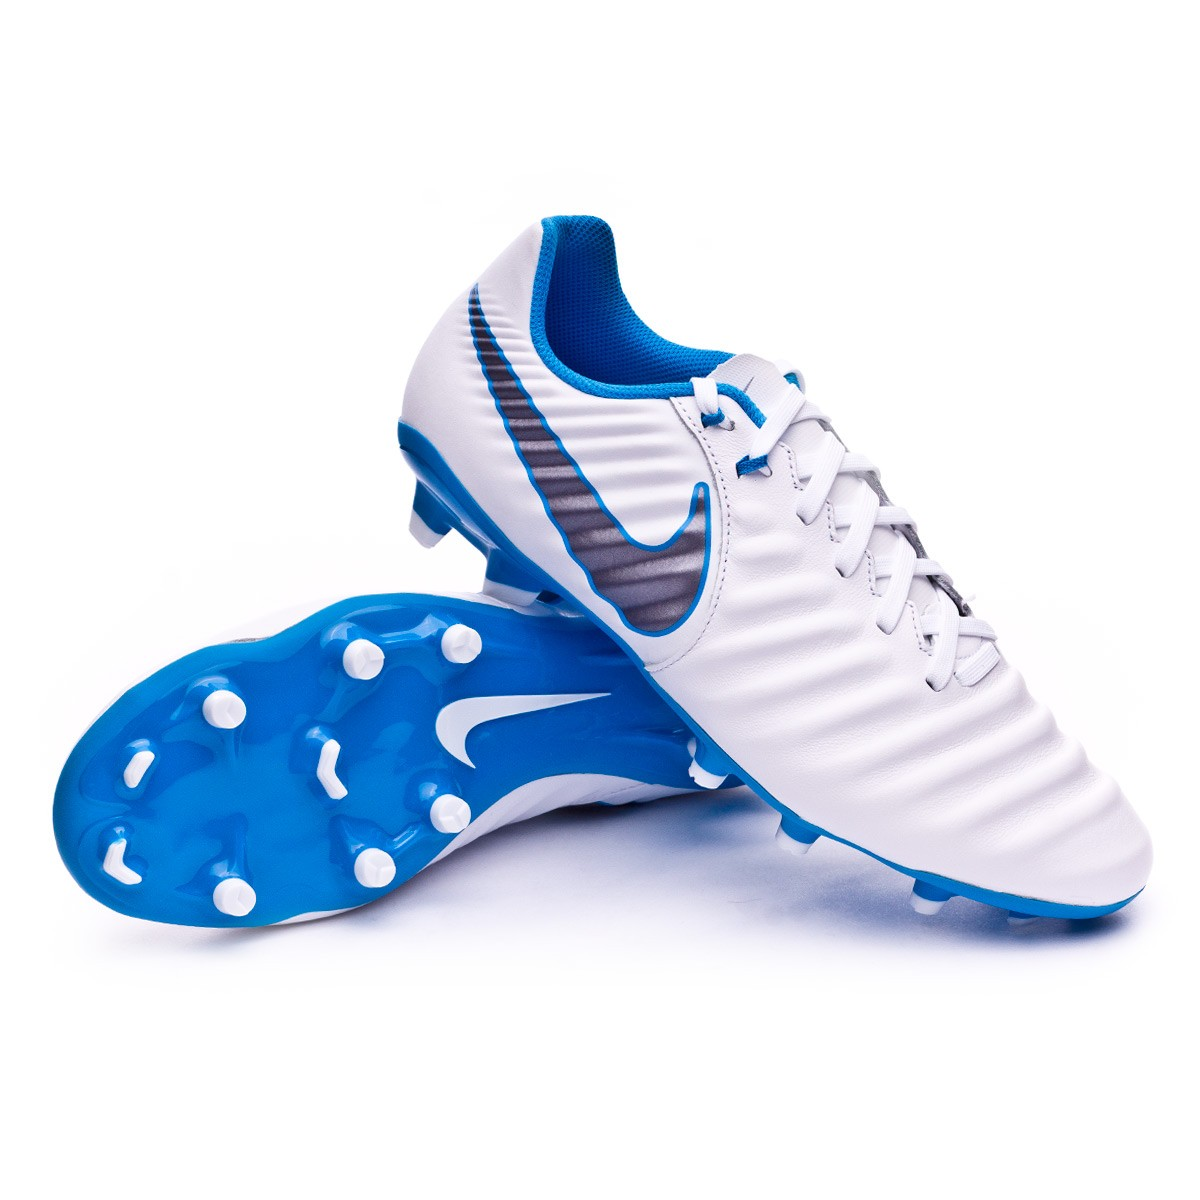 7b531bb47836a Football Boots Nike Tiempo Legend VII Academy FG White-Metallic cool  grey-Blue hero - Football store Fútbol Emotion